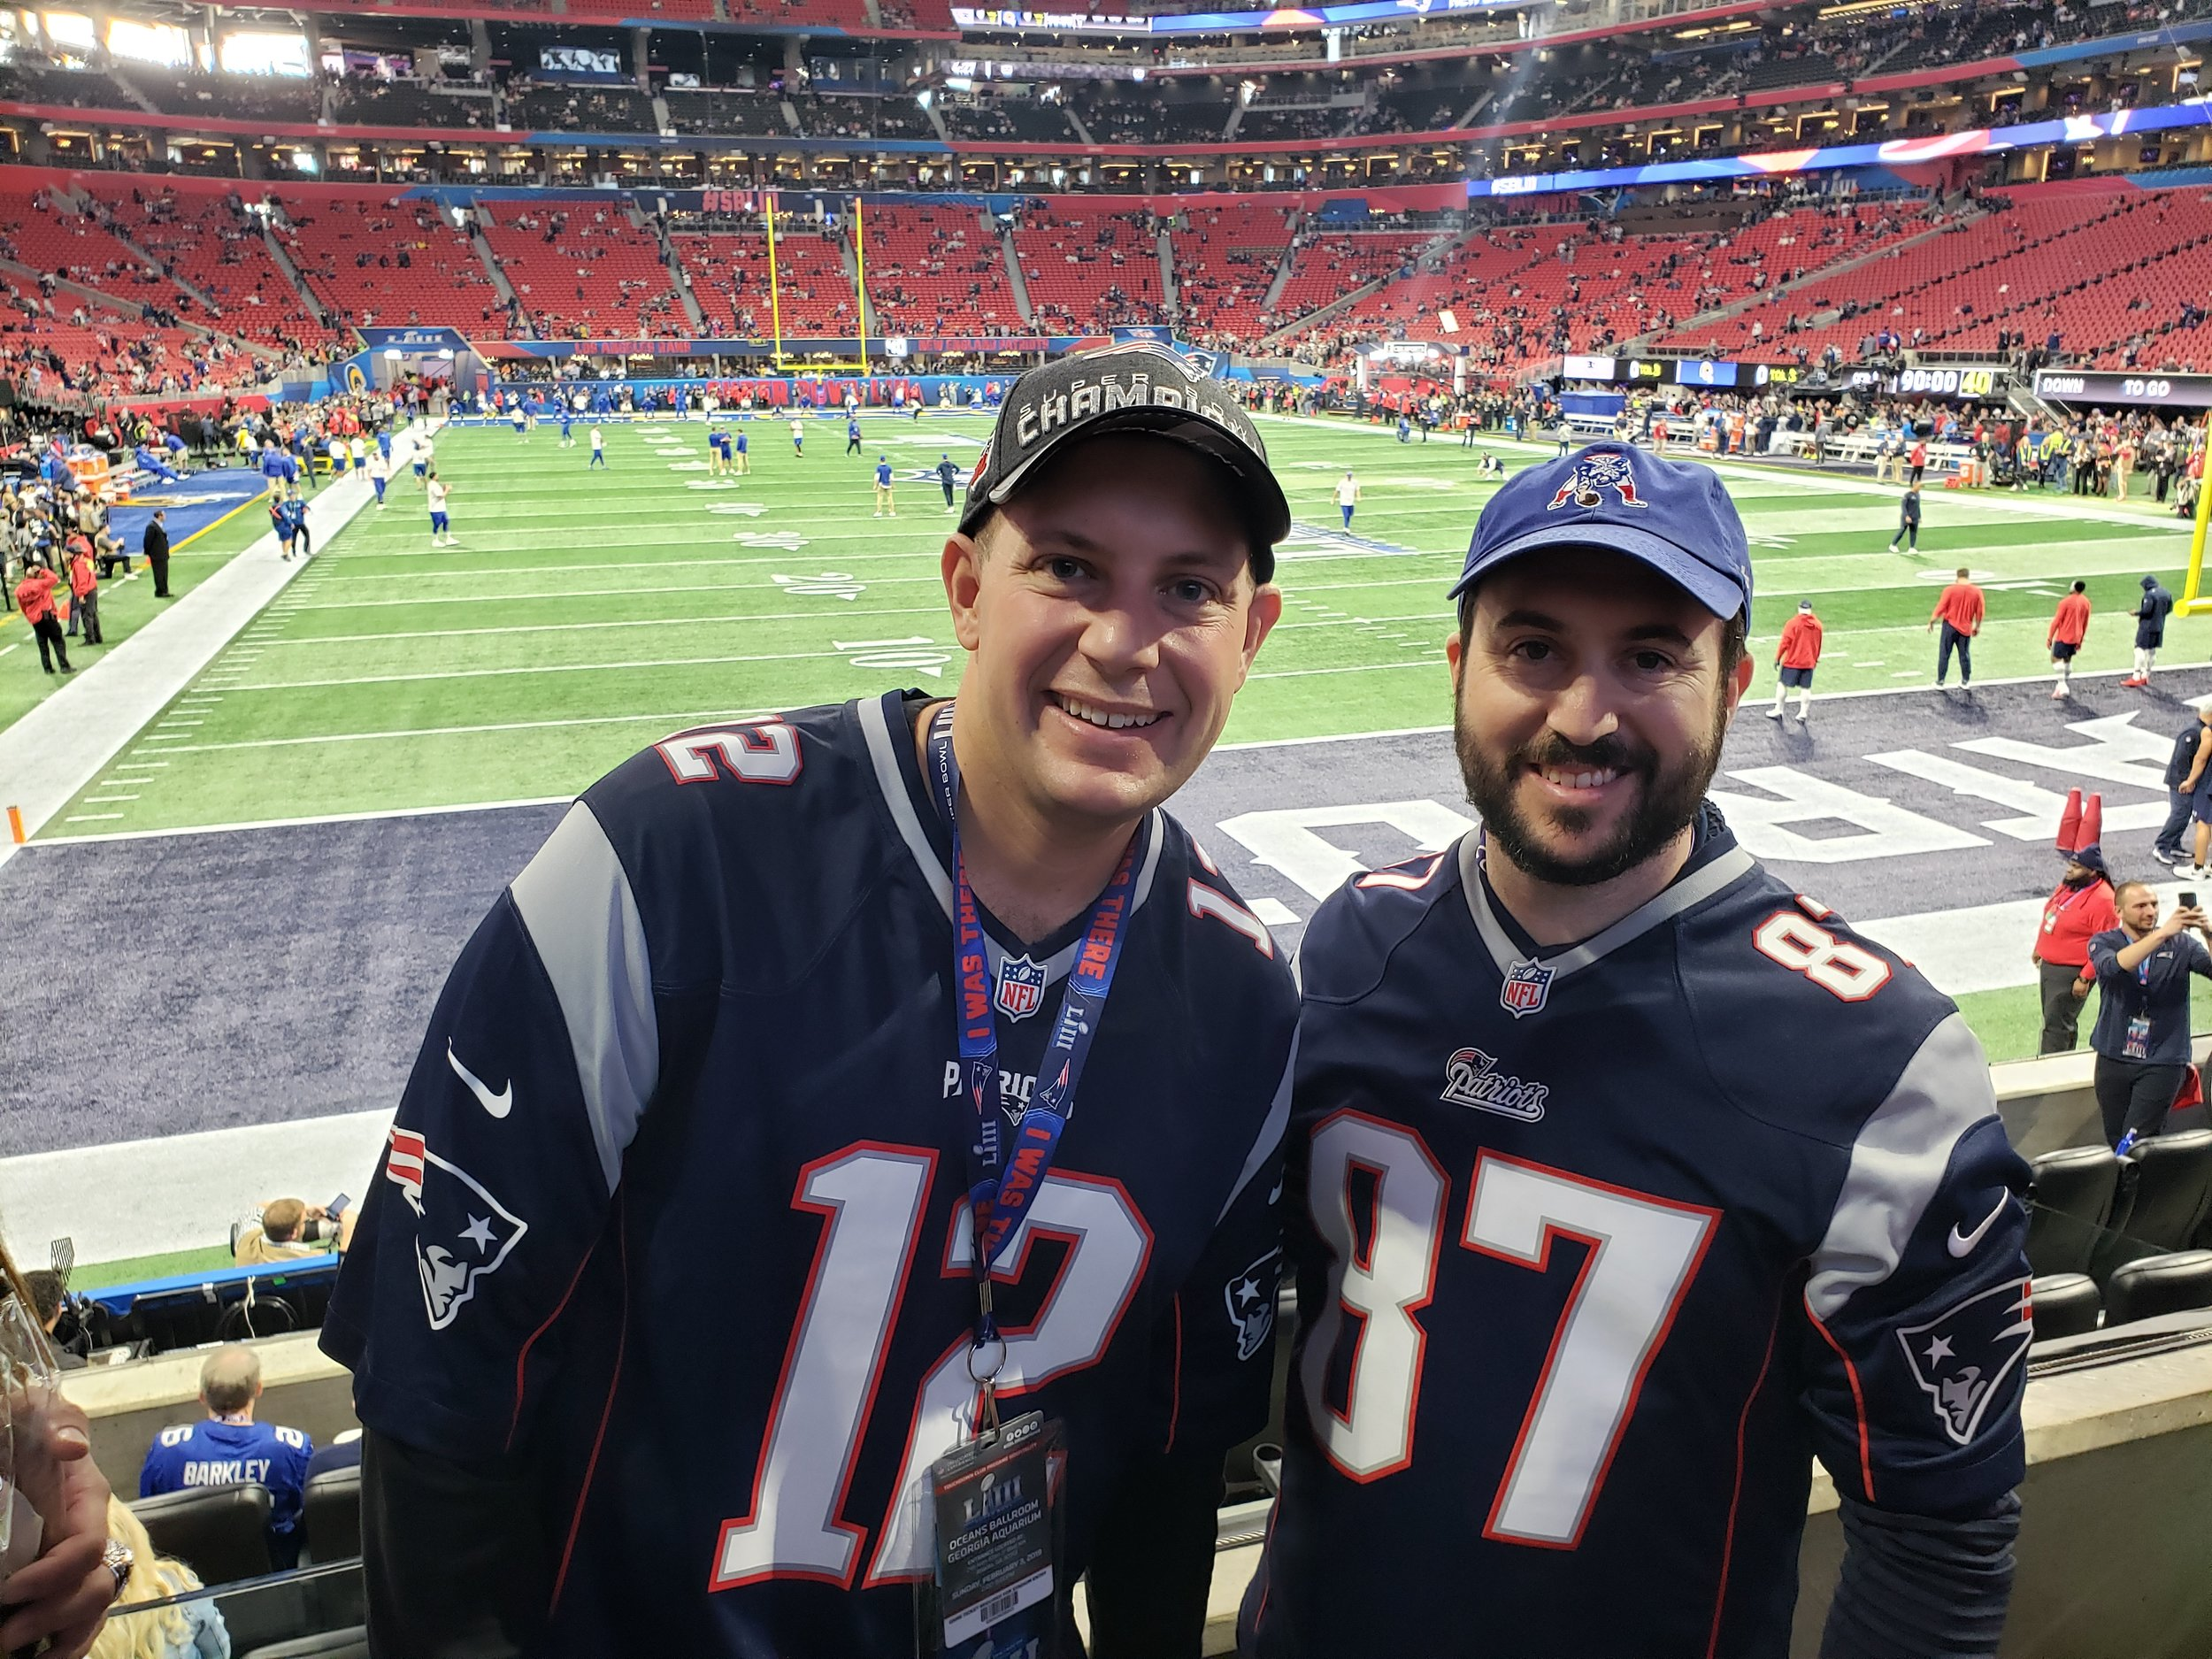 goin' to the ship - Lee Schneider (Boston, MA) & Brian Singer (Needham, MA)The only thing better than seeing the Patriots win another Super Bowl might be winning the Barstool Classic.